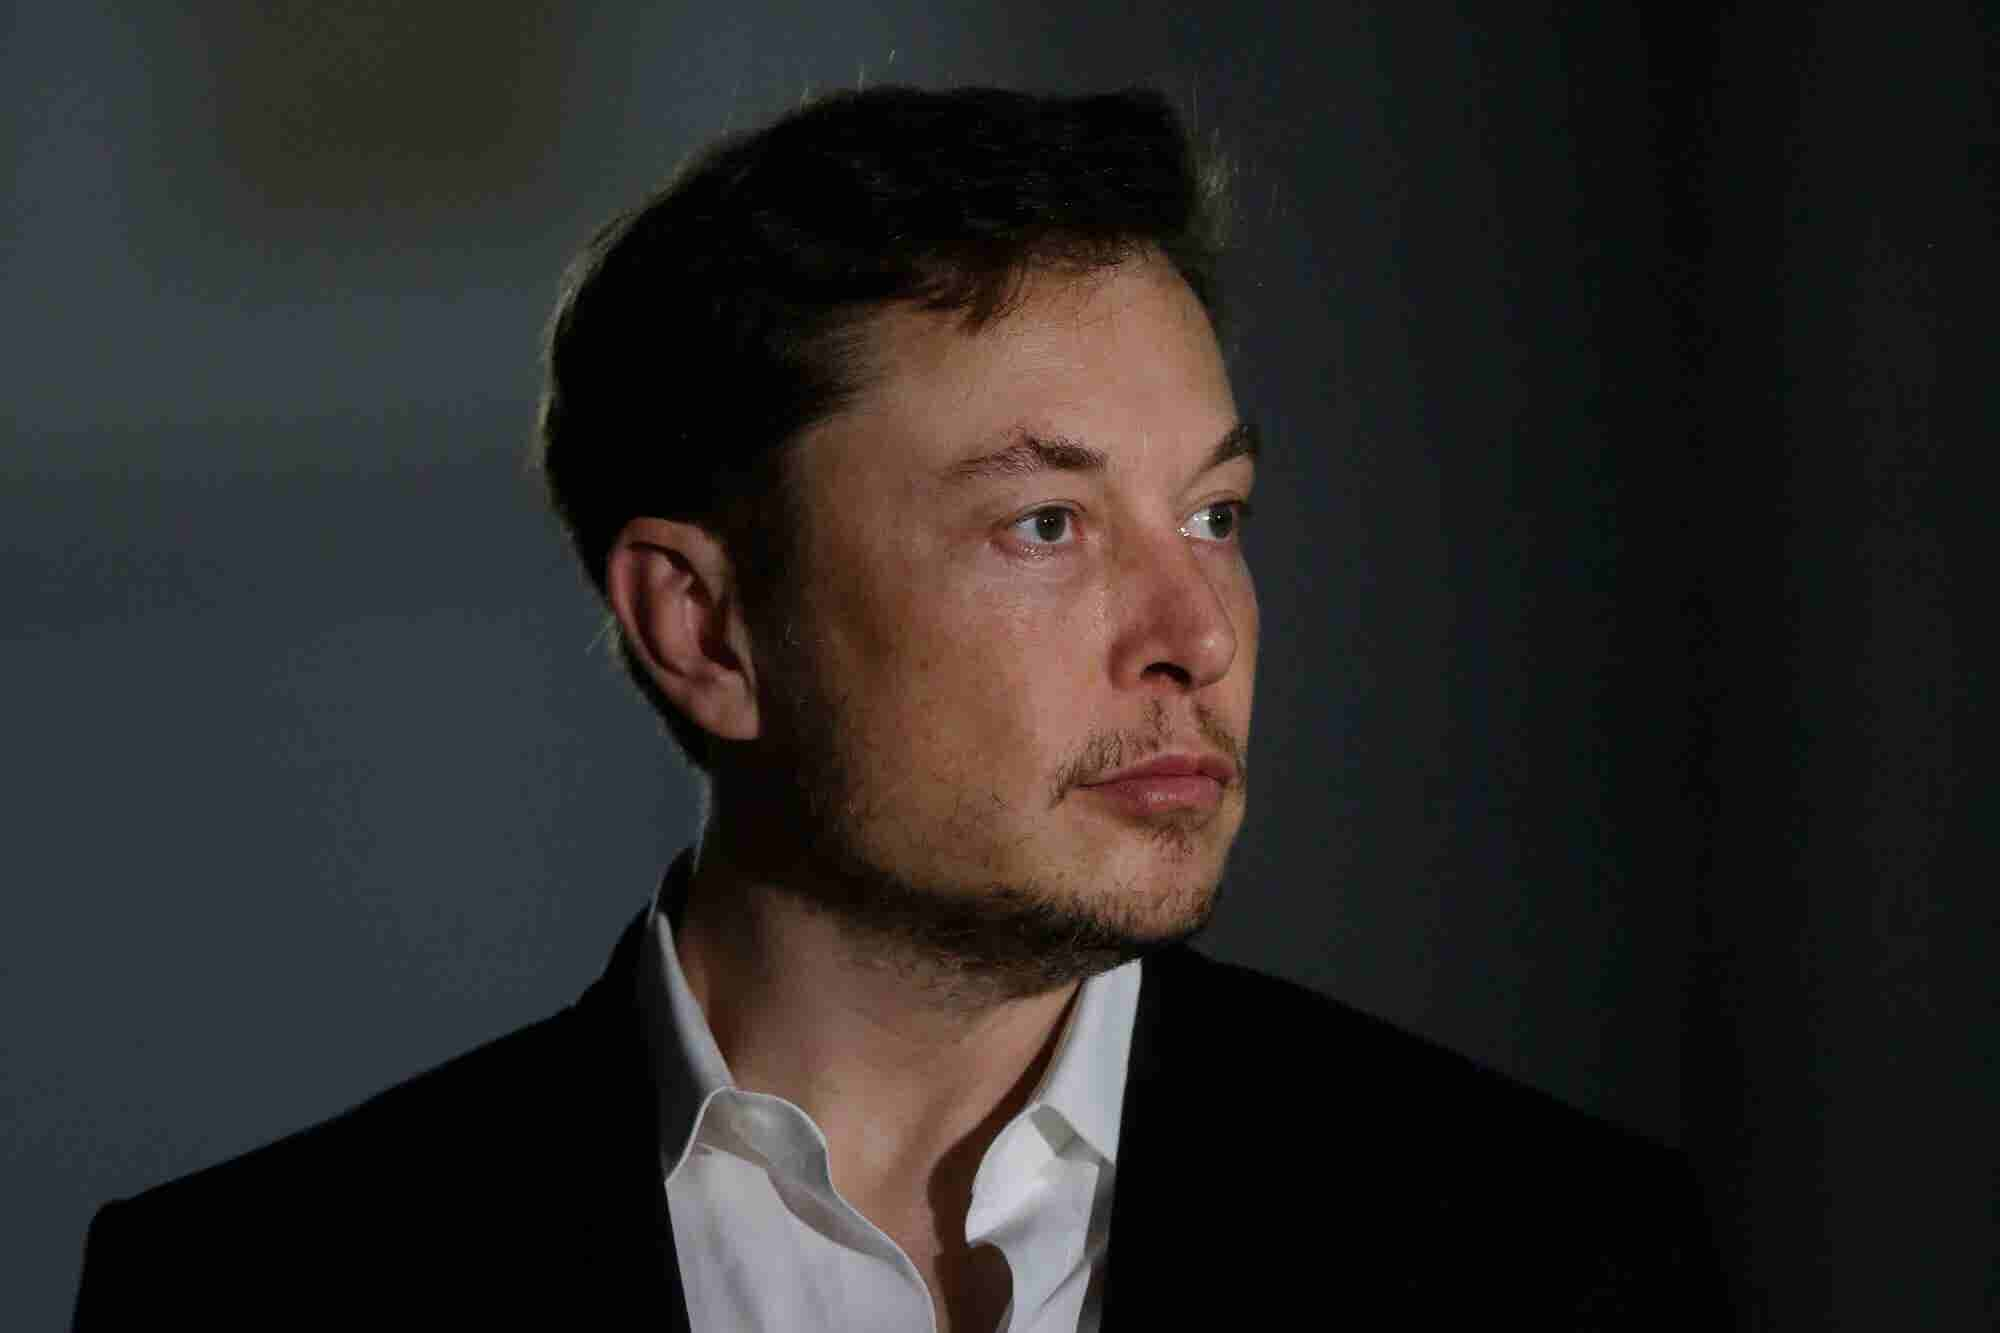 Tesla Staff Were Reportedly Told Not to Walk Past Elon Musk's Desk Because of His Wild Firing Rampages